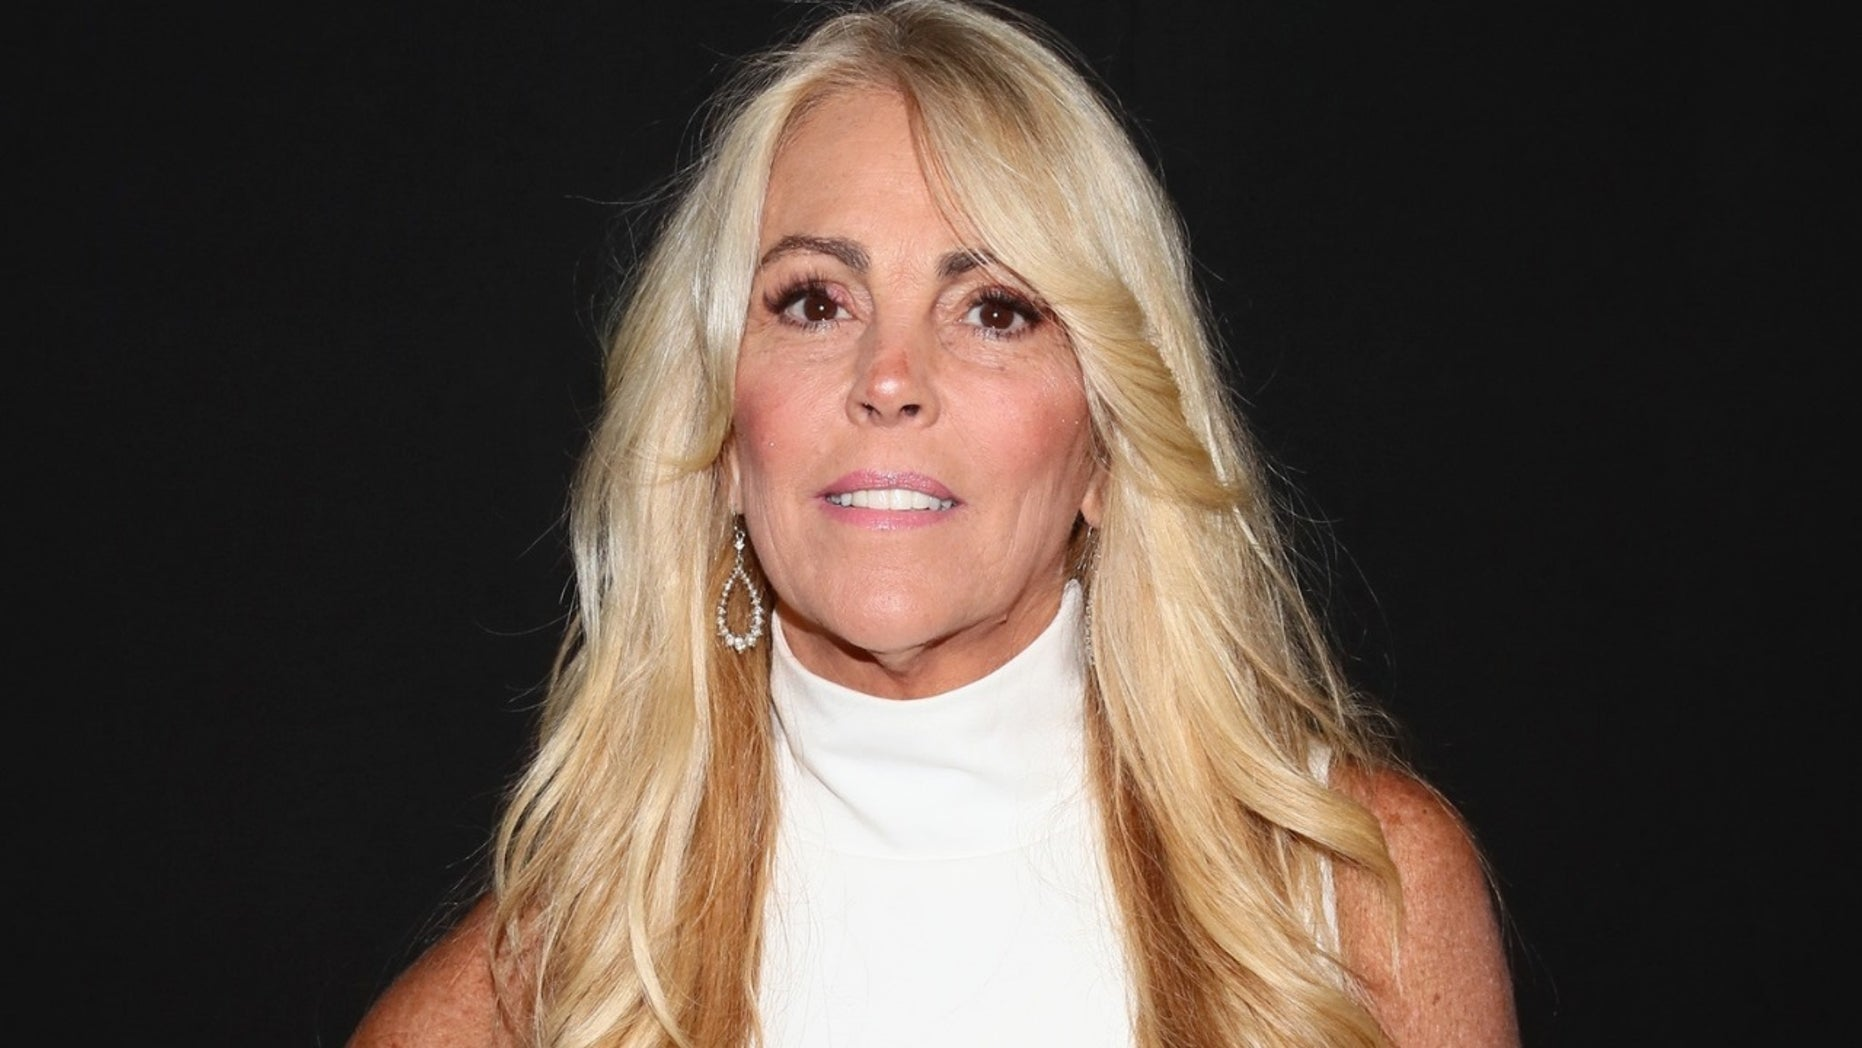 Dina Lohan Says She's Getting Married… to a Man She's Never Met!